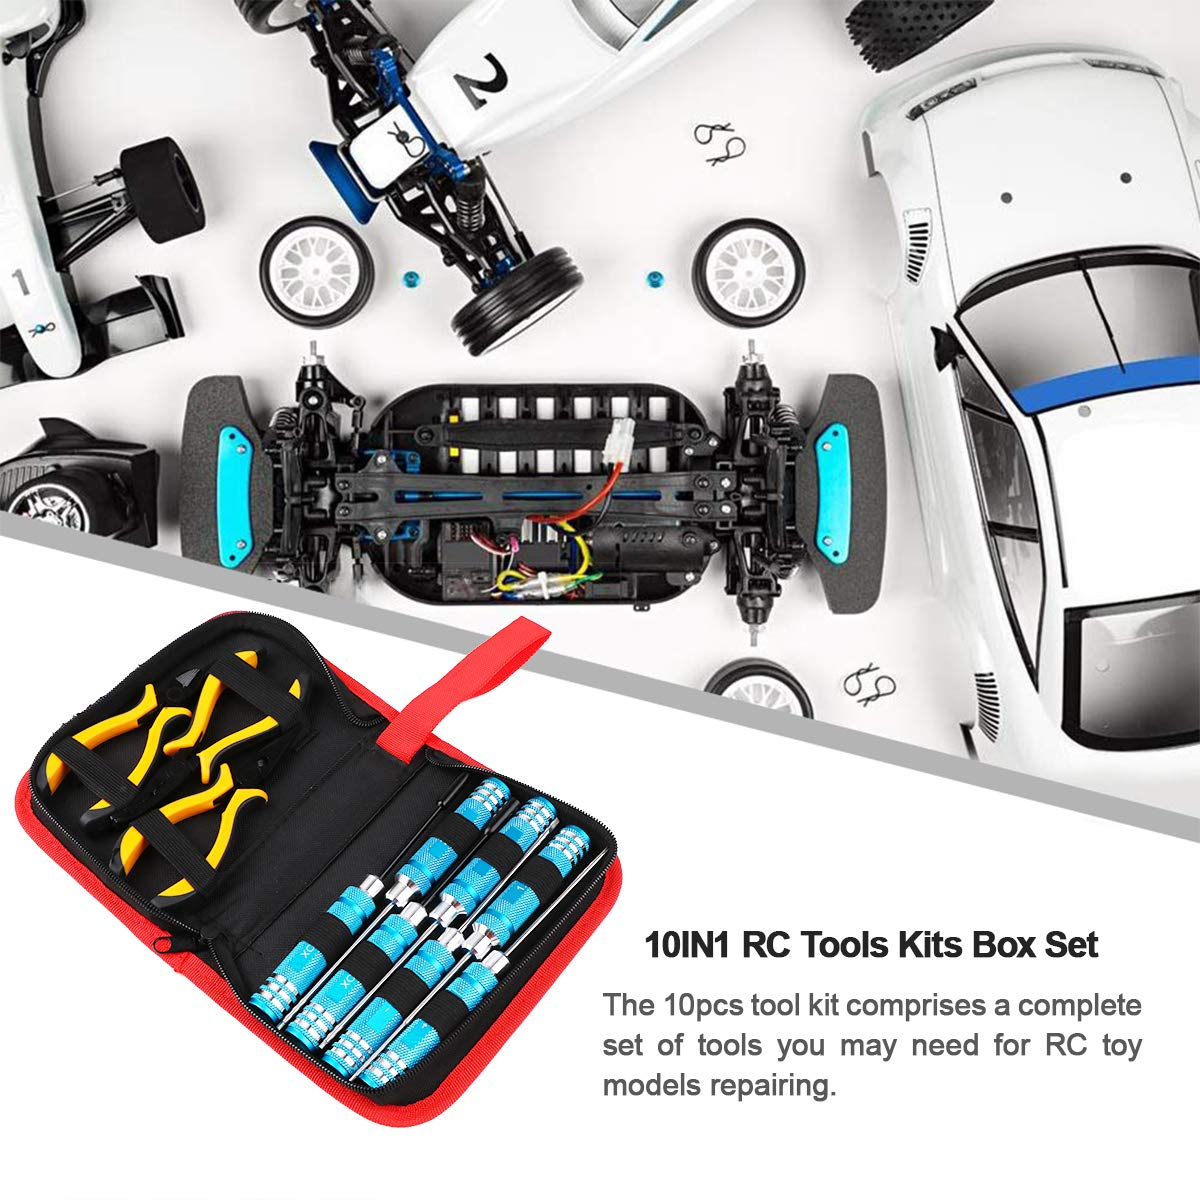 Hobby-Ace 10IN1 RC Tools Kits Box Set Screwdriver Pliers Hex Repair for Helicopter Multirotors